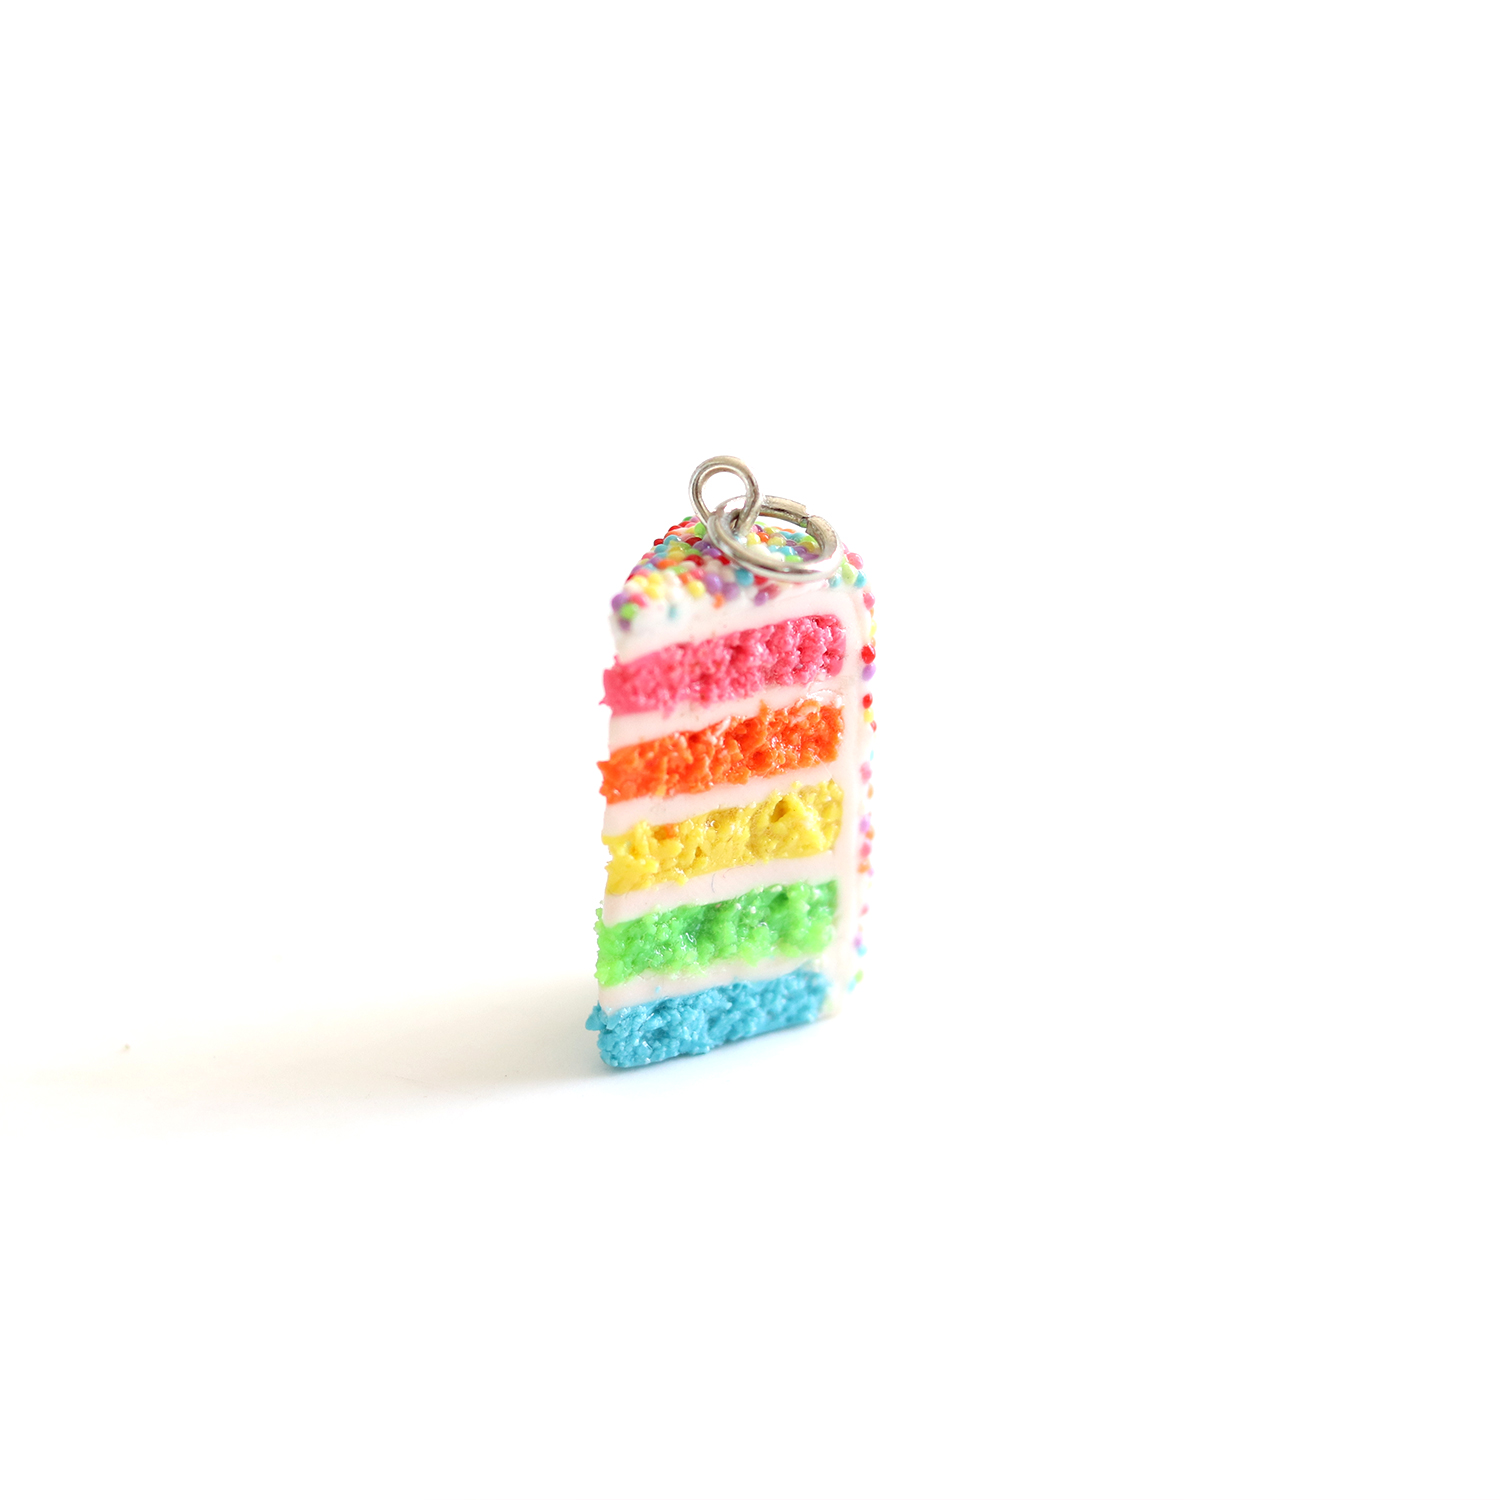 Neon Rainbow Cake Charm/ Necklace